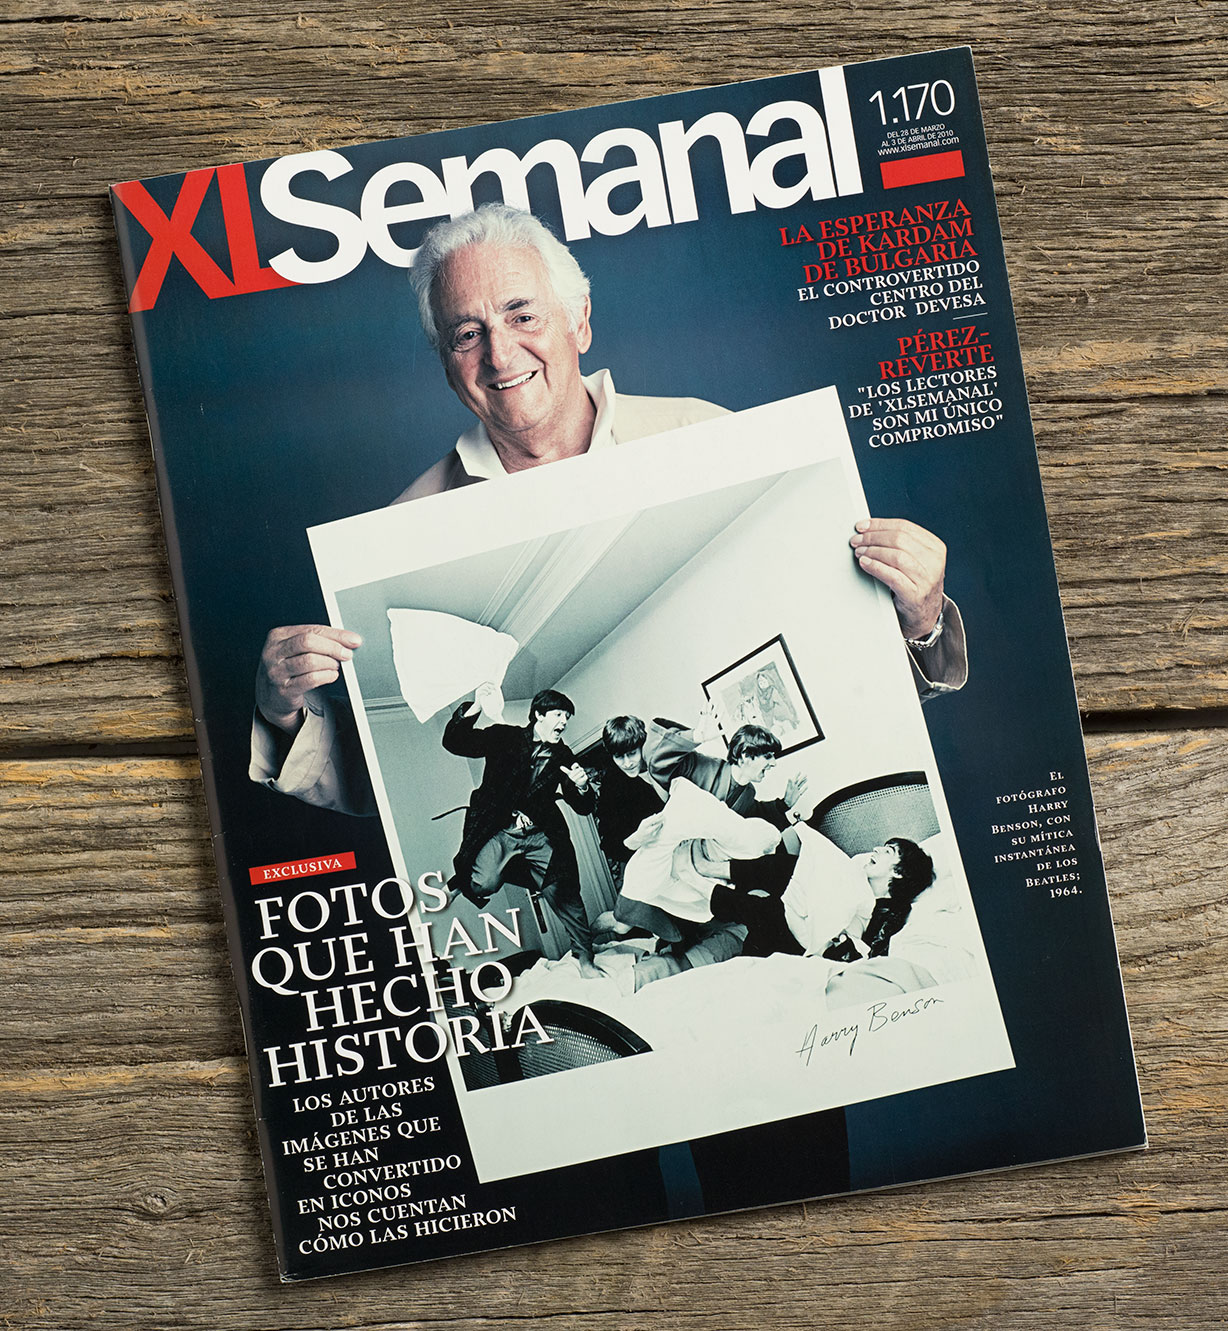 XL-Semanal-Behind-Photos002.jpg